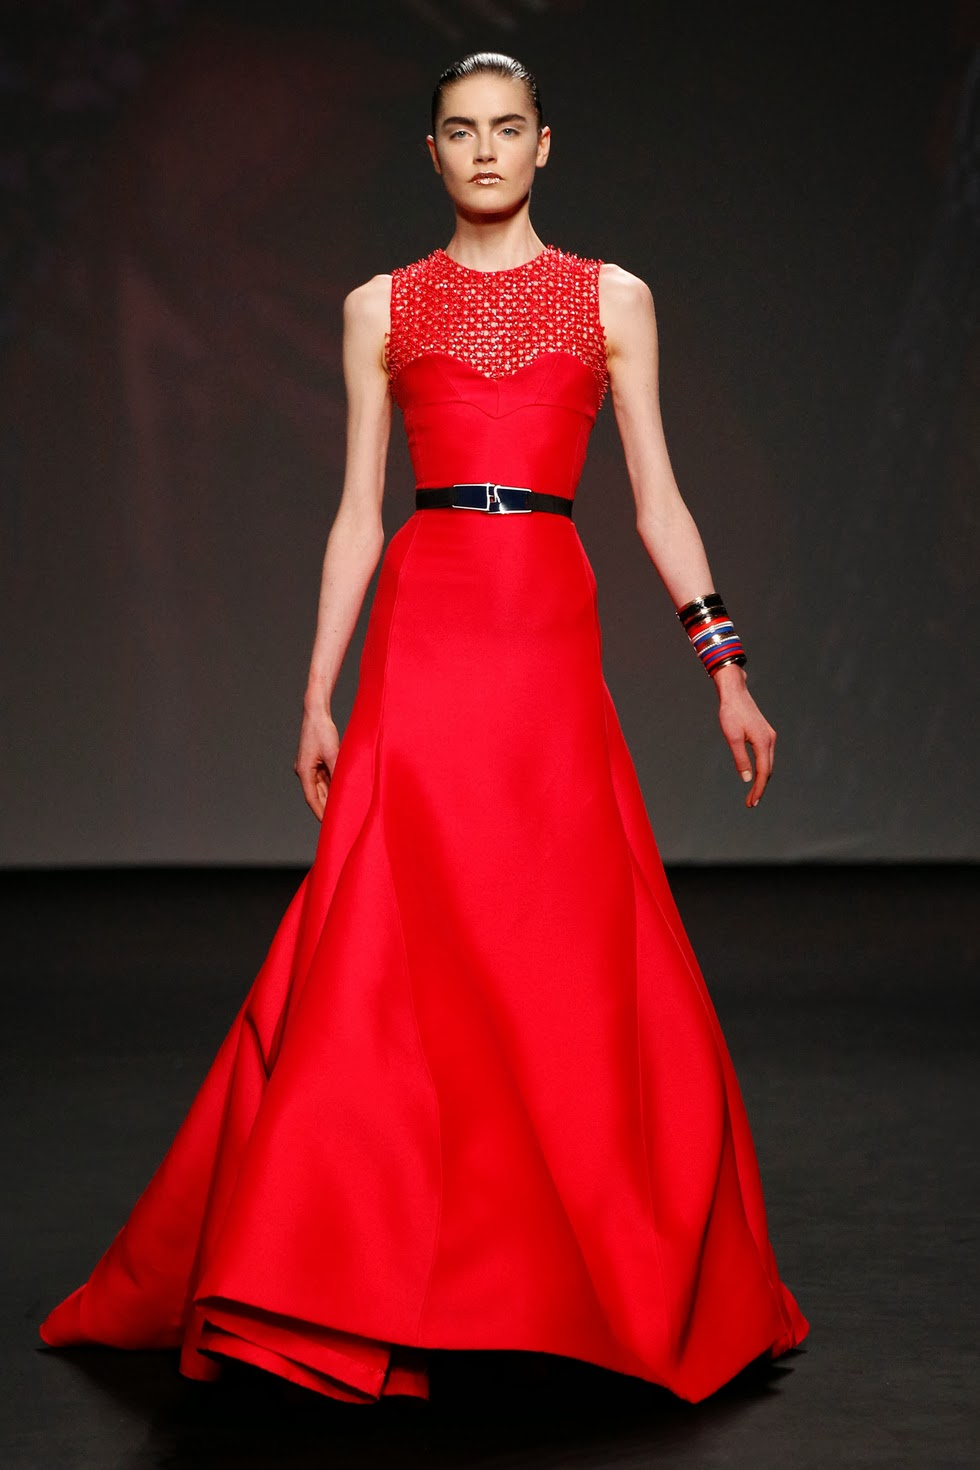 Fashion ra christian dior haute couture red dress k rm z for Haute couture red